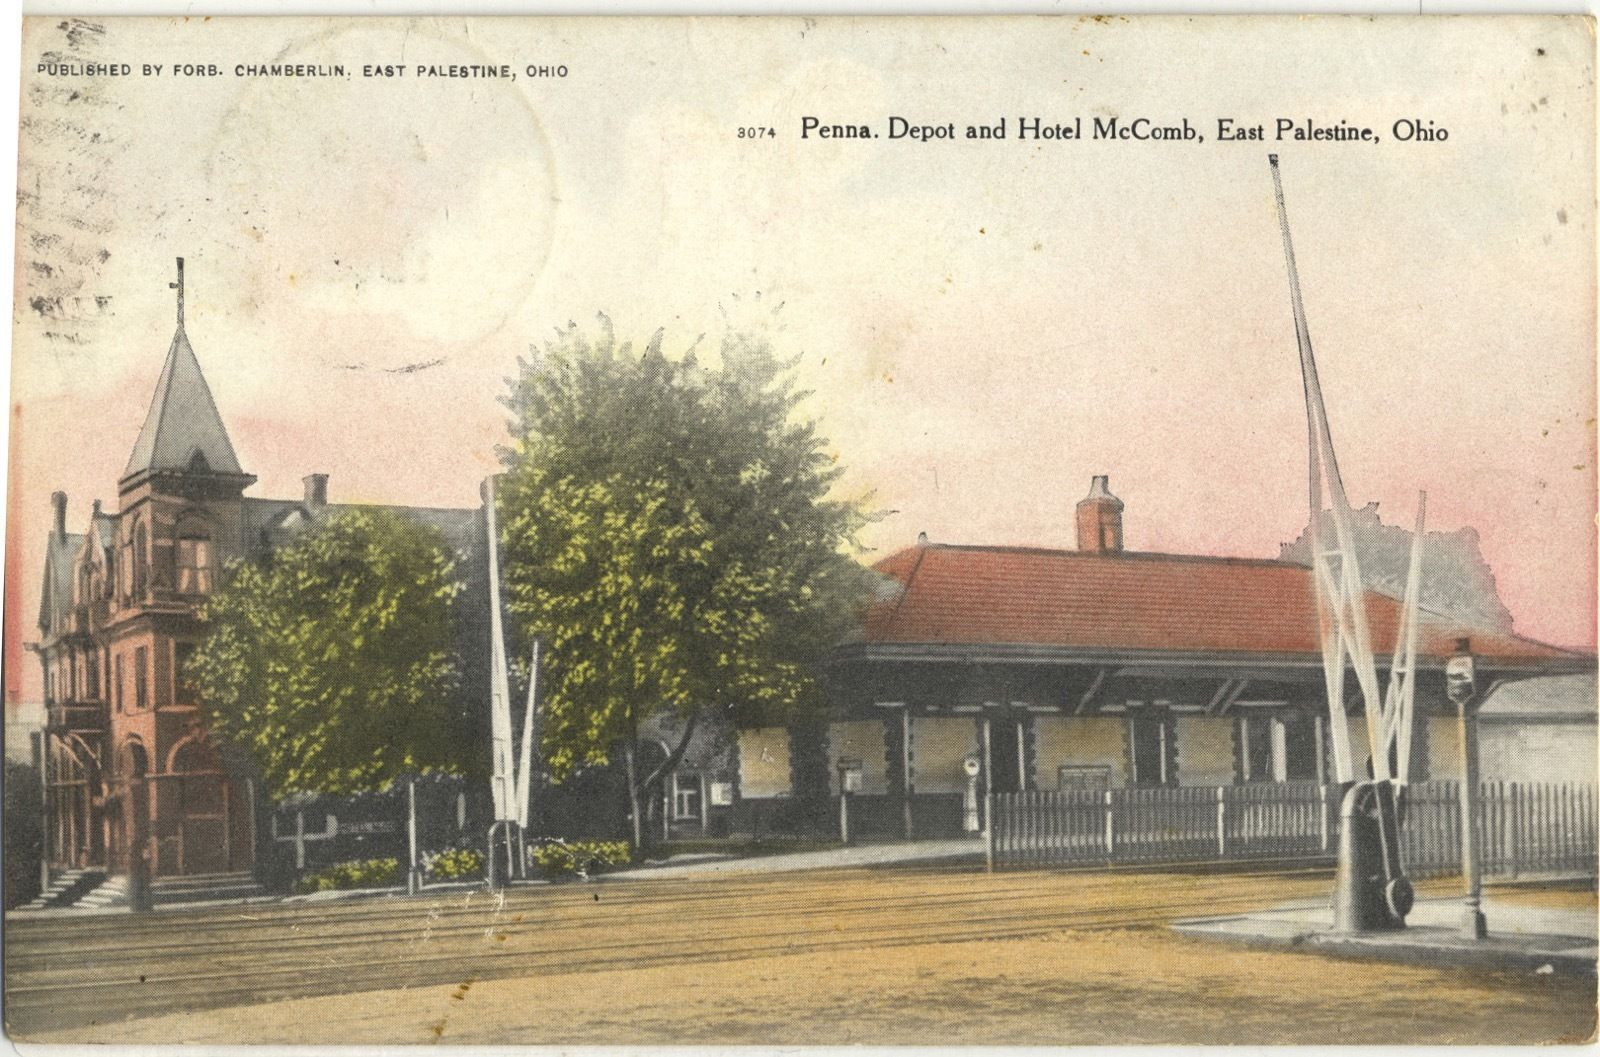 Hotel McComb and Pennsylvania Railroad Depot